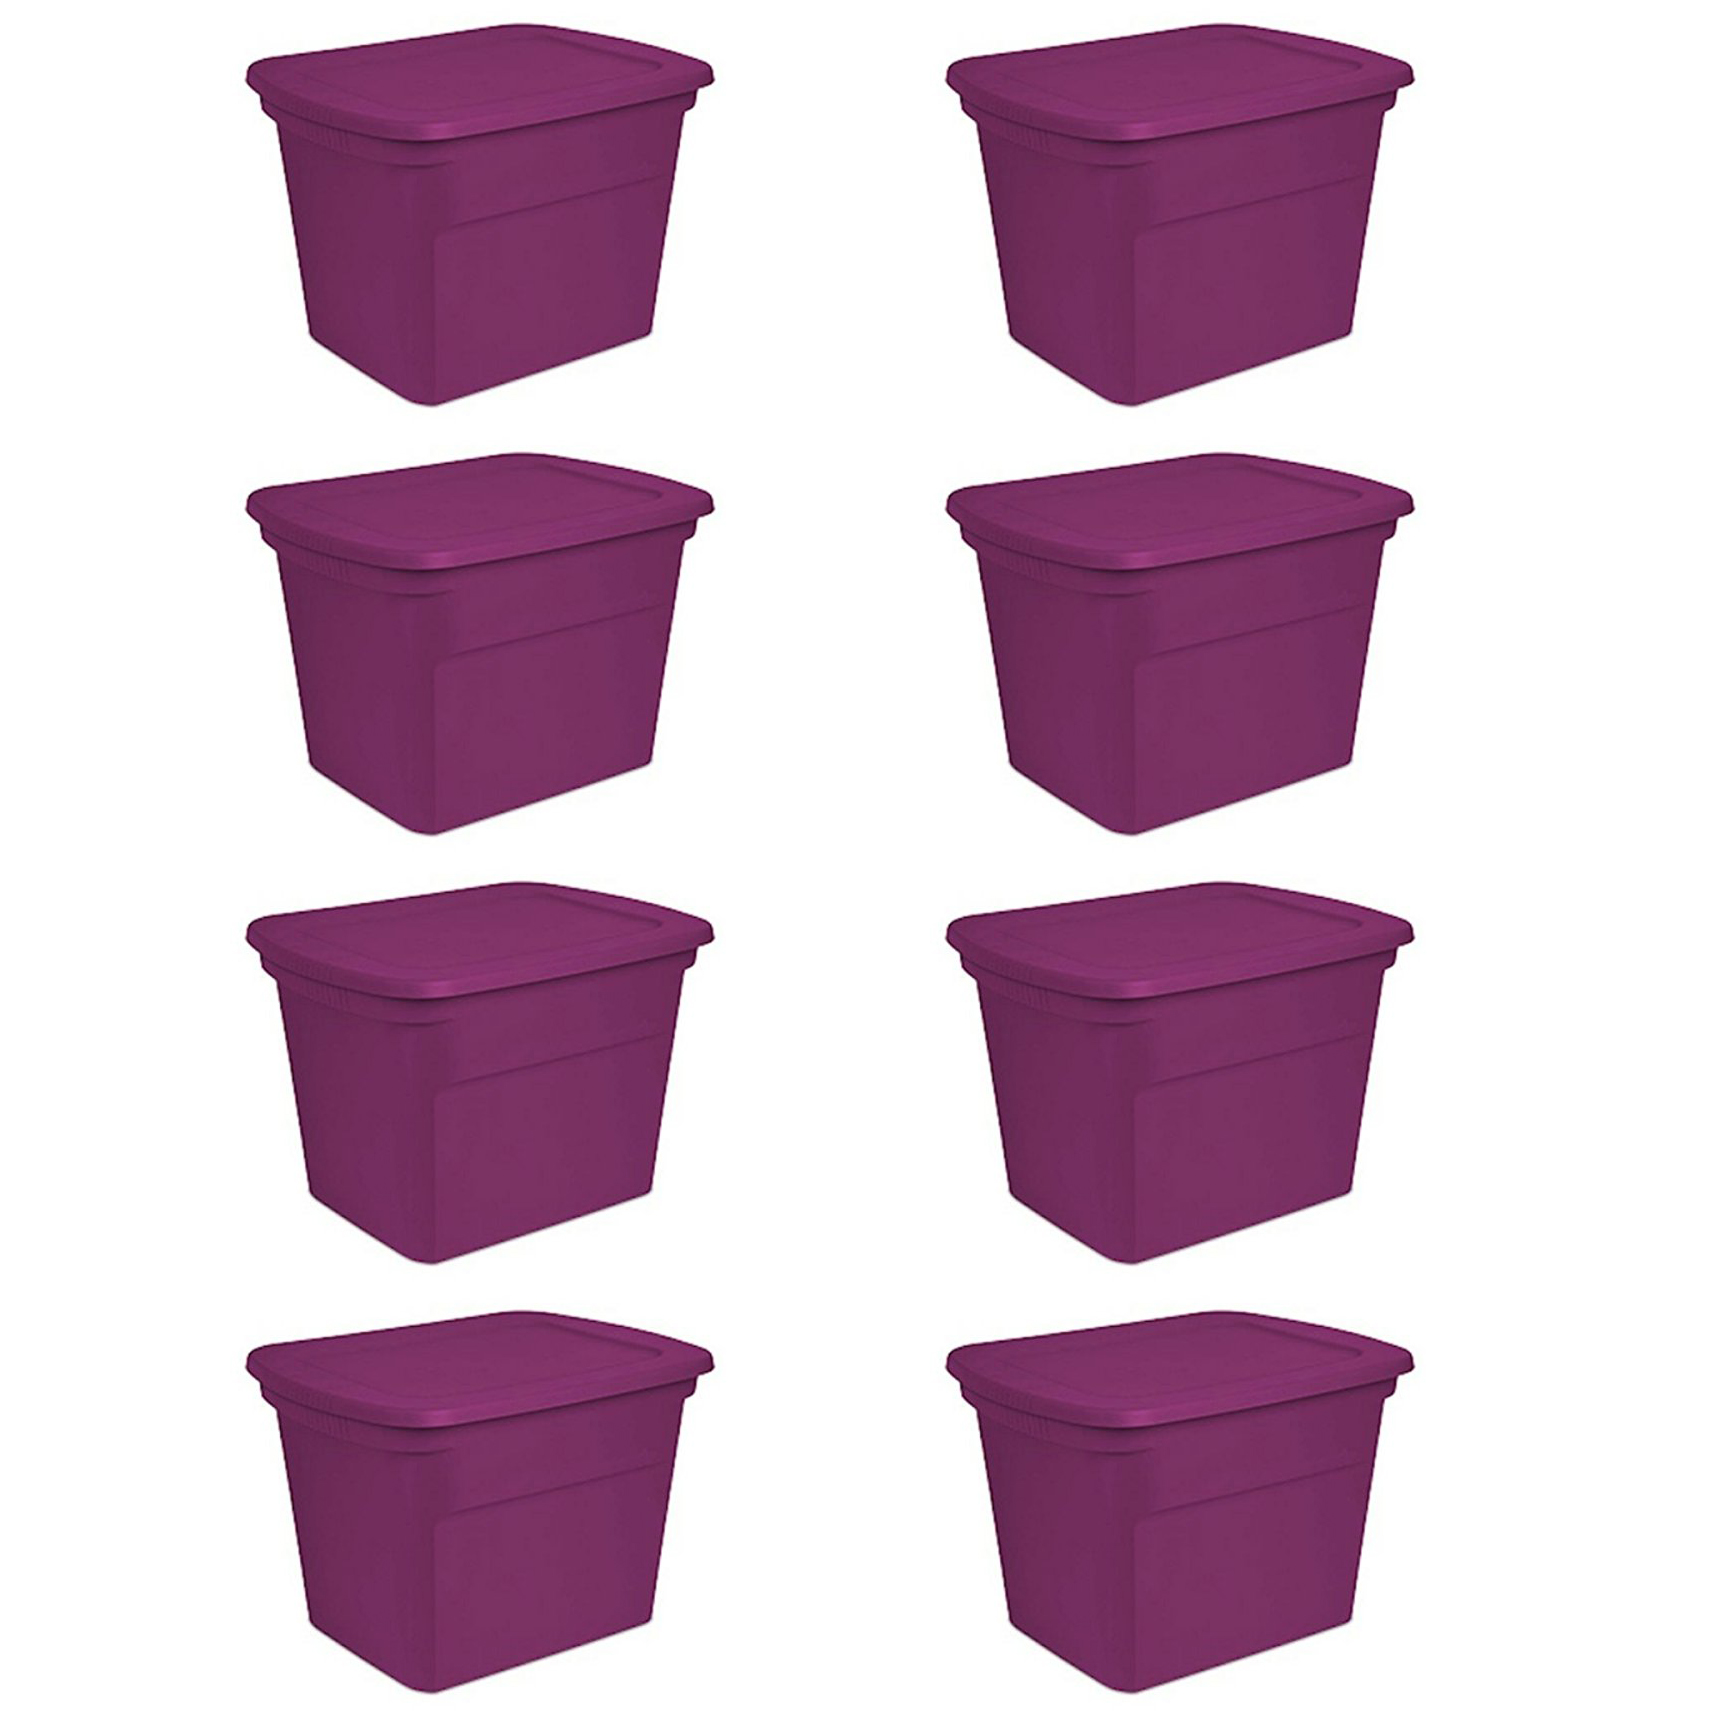 The 8 Pack Of Sterilite 18 Gallon Totes ...